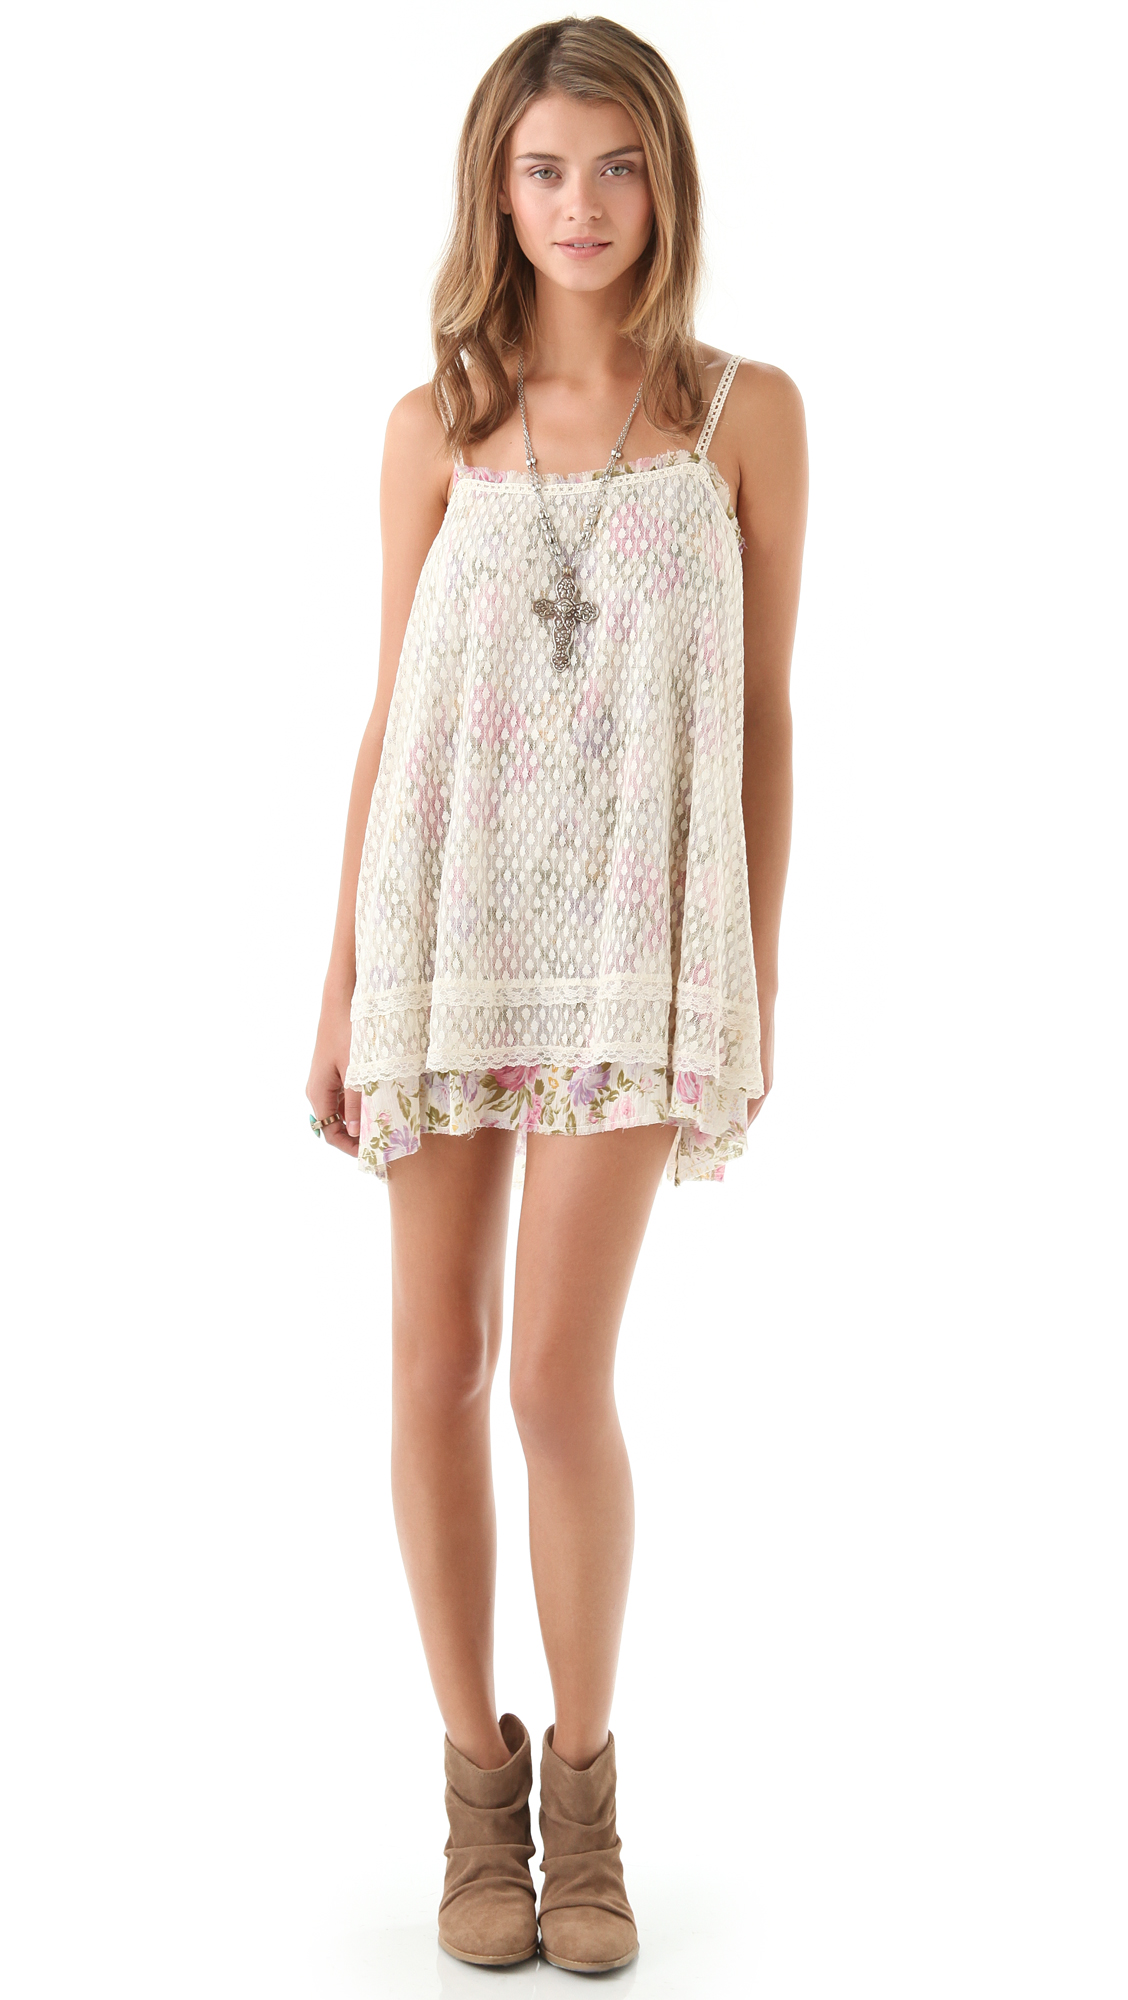 Dressing Point P Free People Images Reverse Search